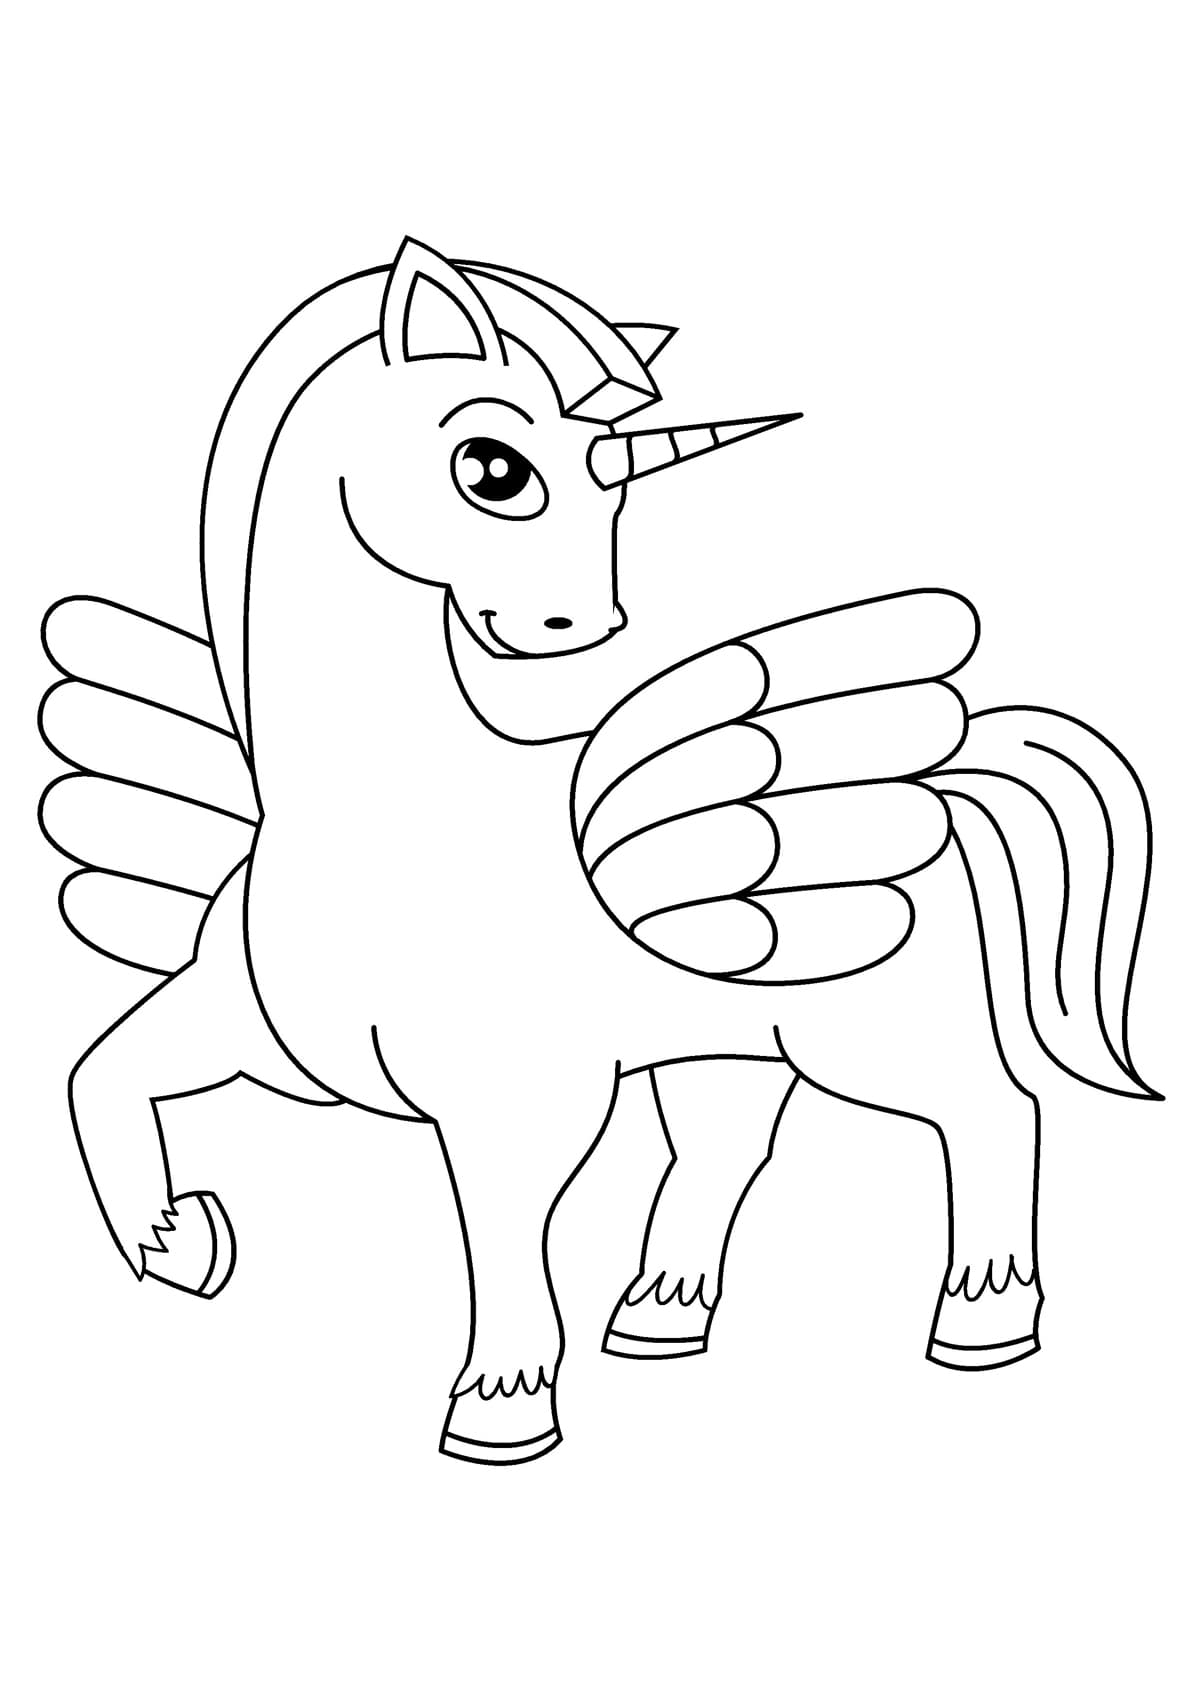 Coloring Pages of Unicorns, 100 Black and White Pictures. Print Online!